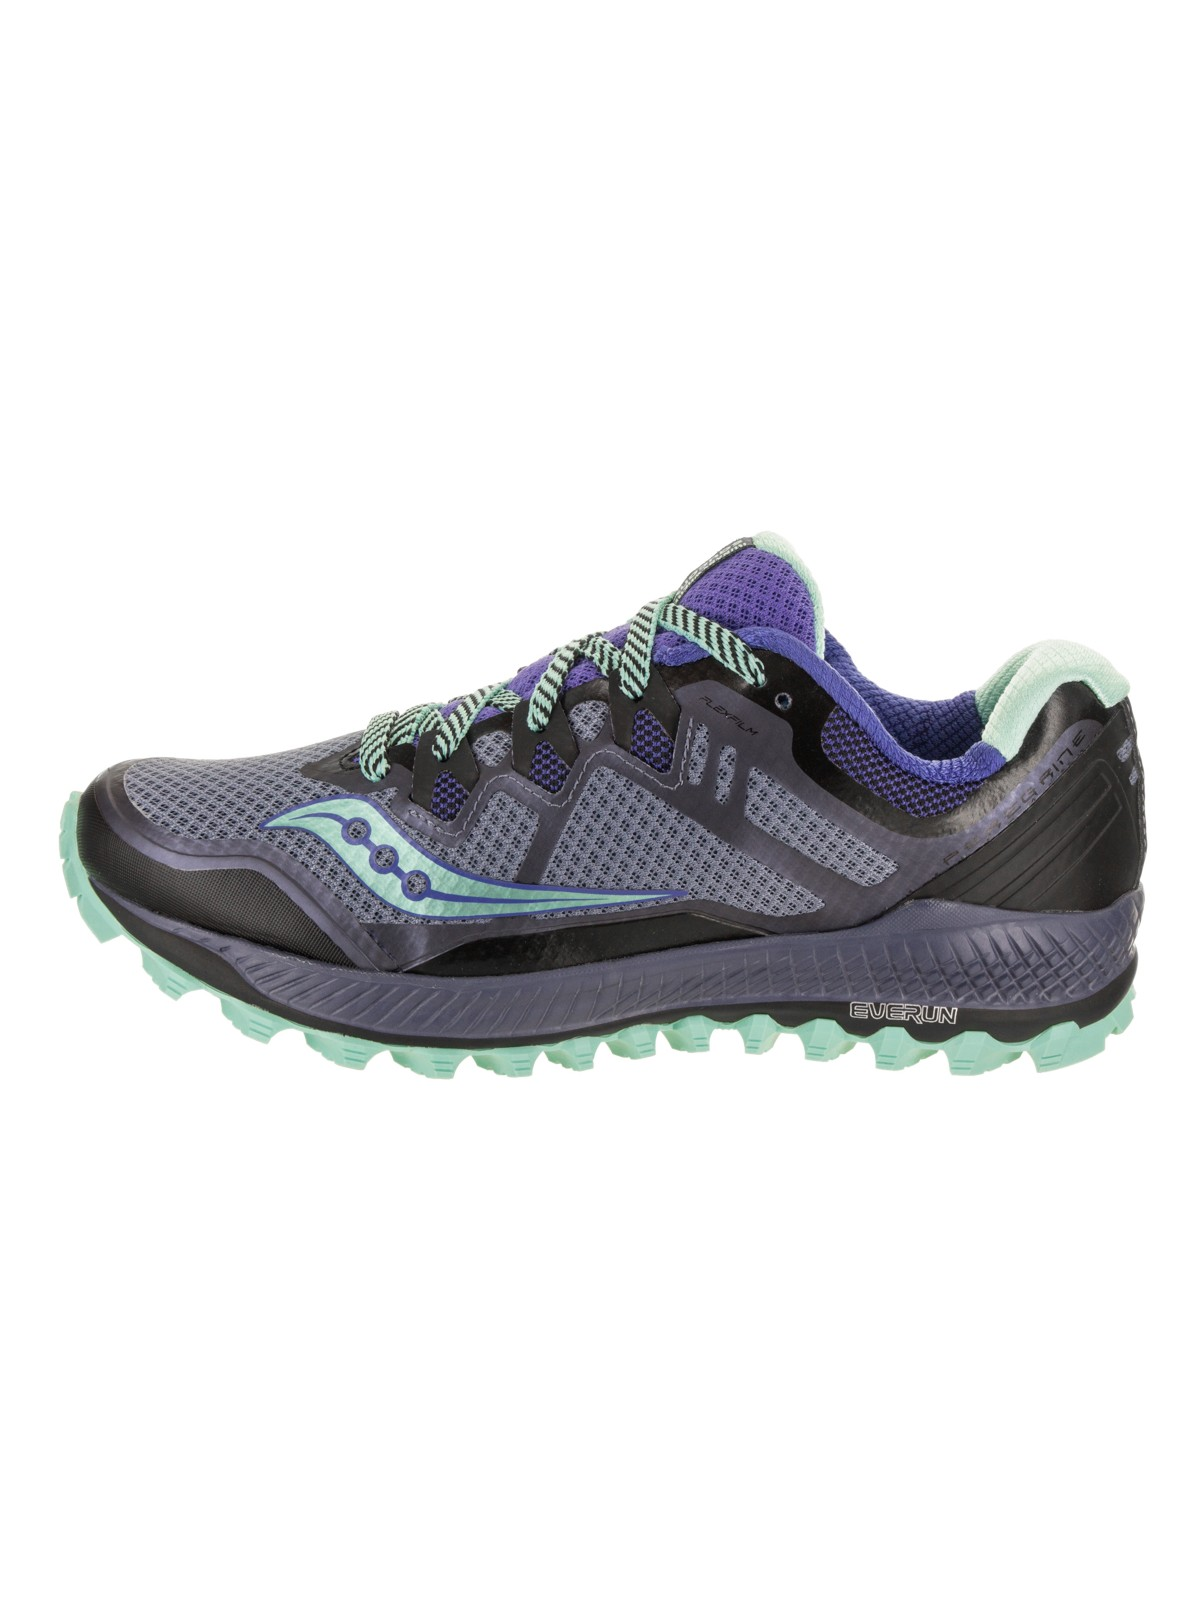 Saucony Women's Peregrine 8 Hiking Hiking 8 Shoe e0c812